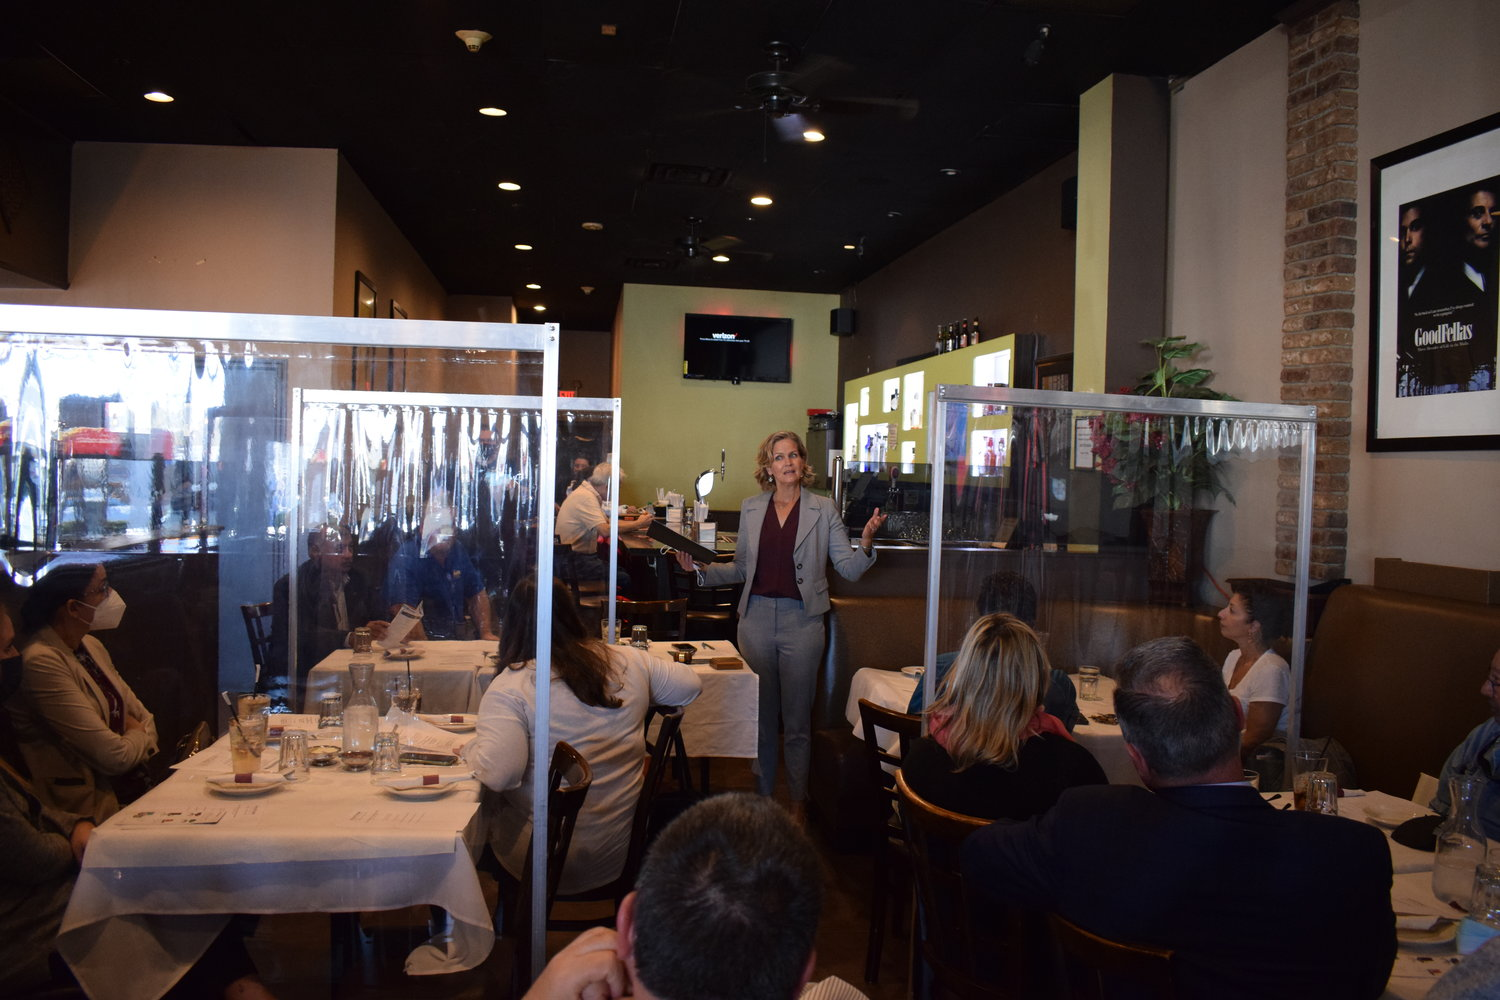 Nassau County Executive Laura Curran spoke with local business leaders at the Freeport Chamber of Commerce's luncheon on Tuesday.